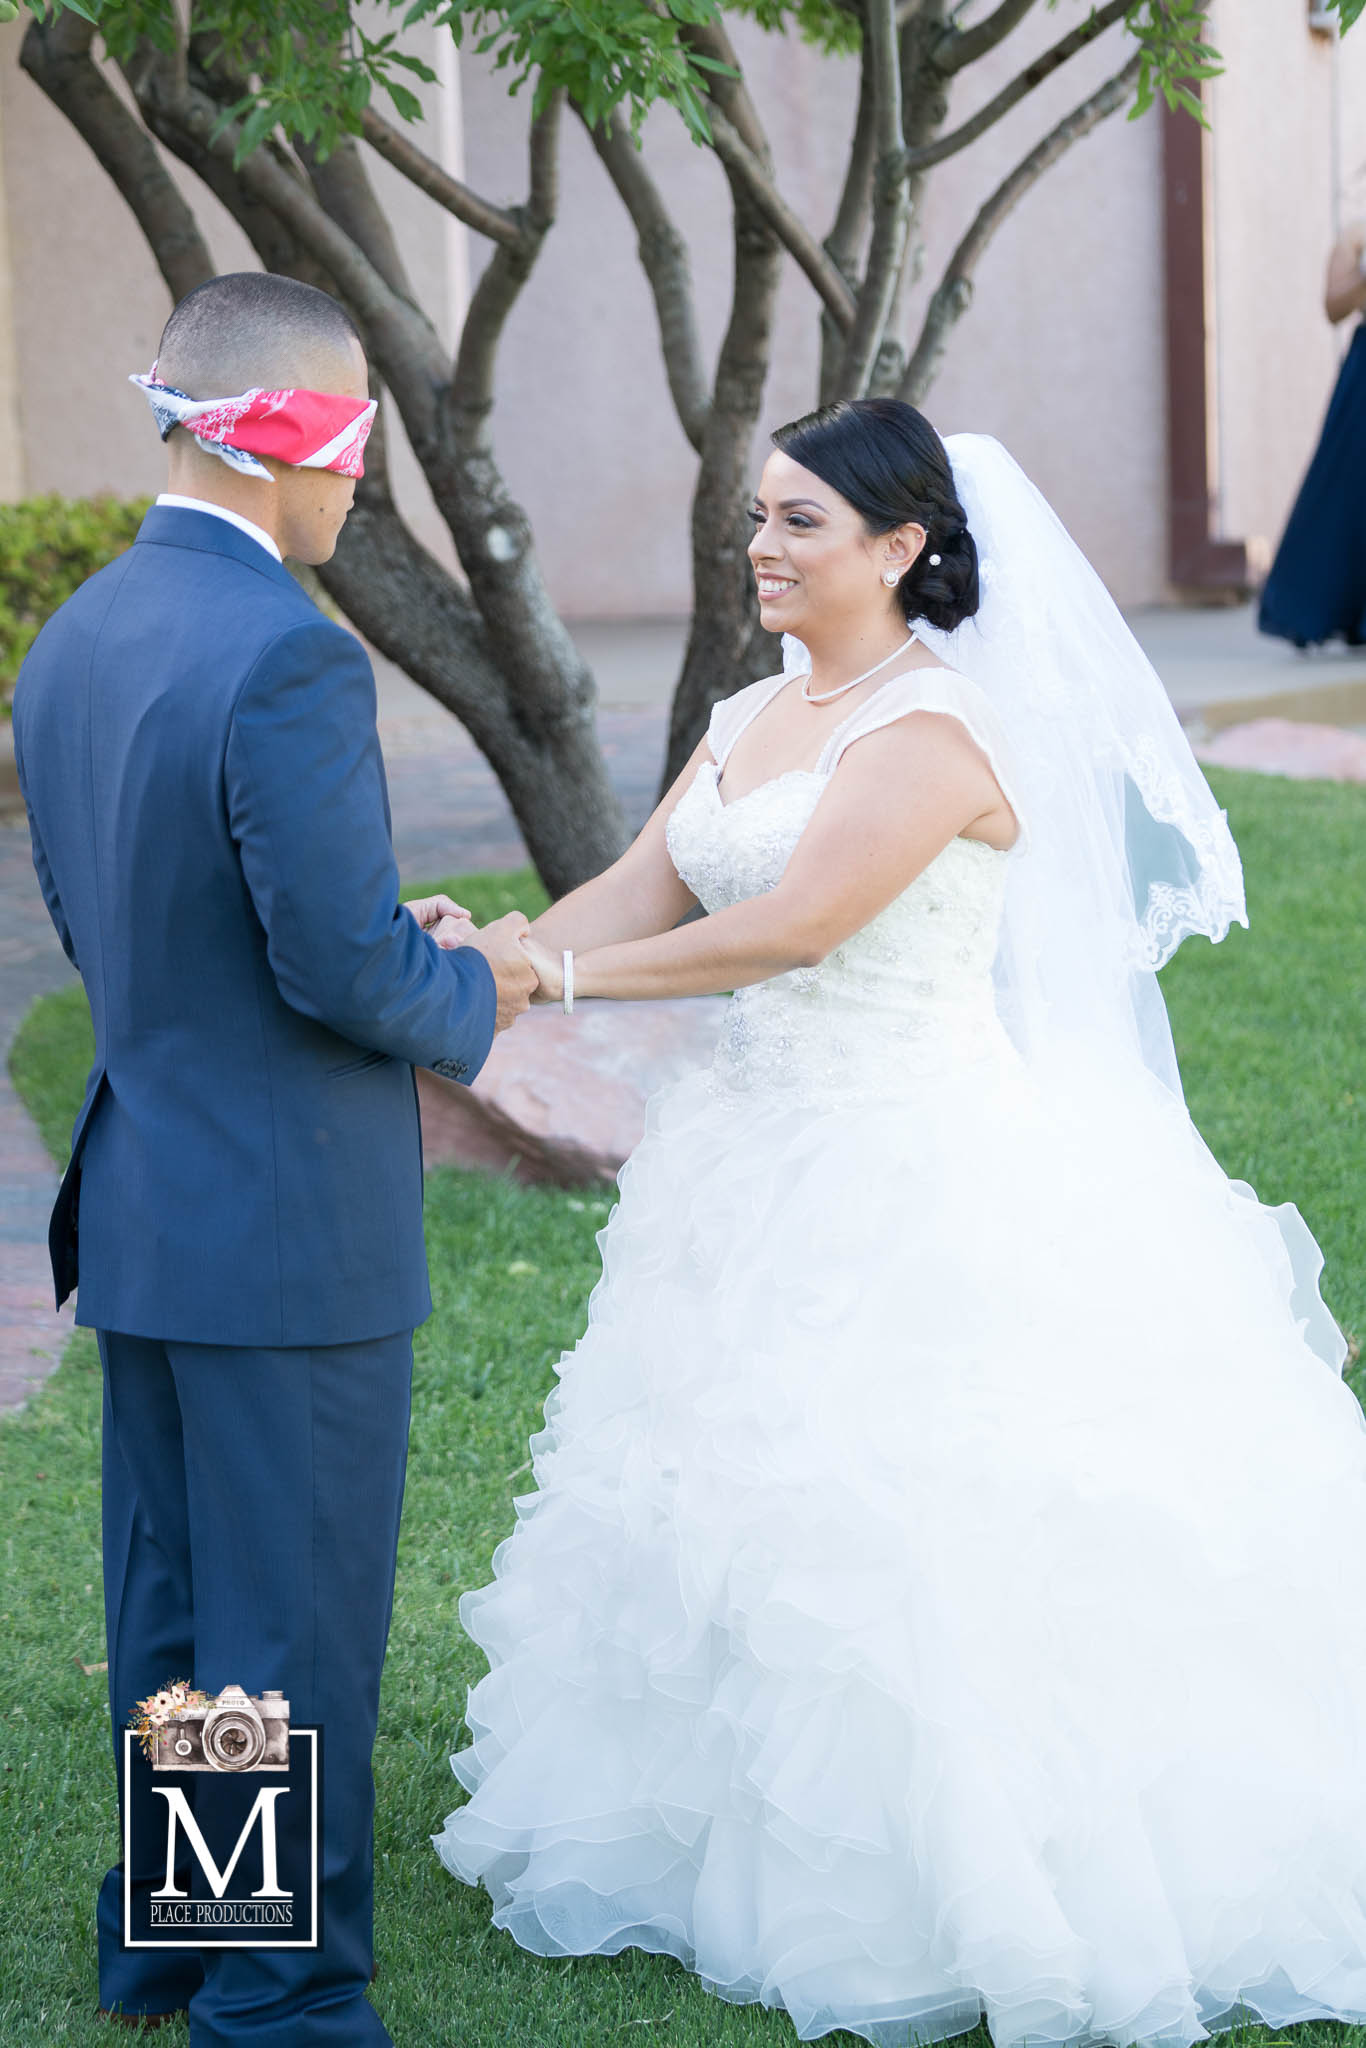 Reasons To Have A First Look Photo Session On Your Las Vegas Wedding Day